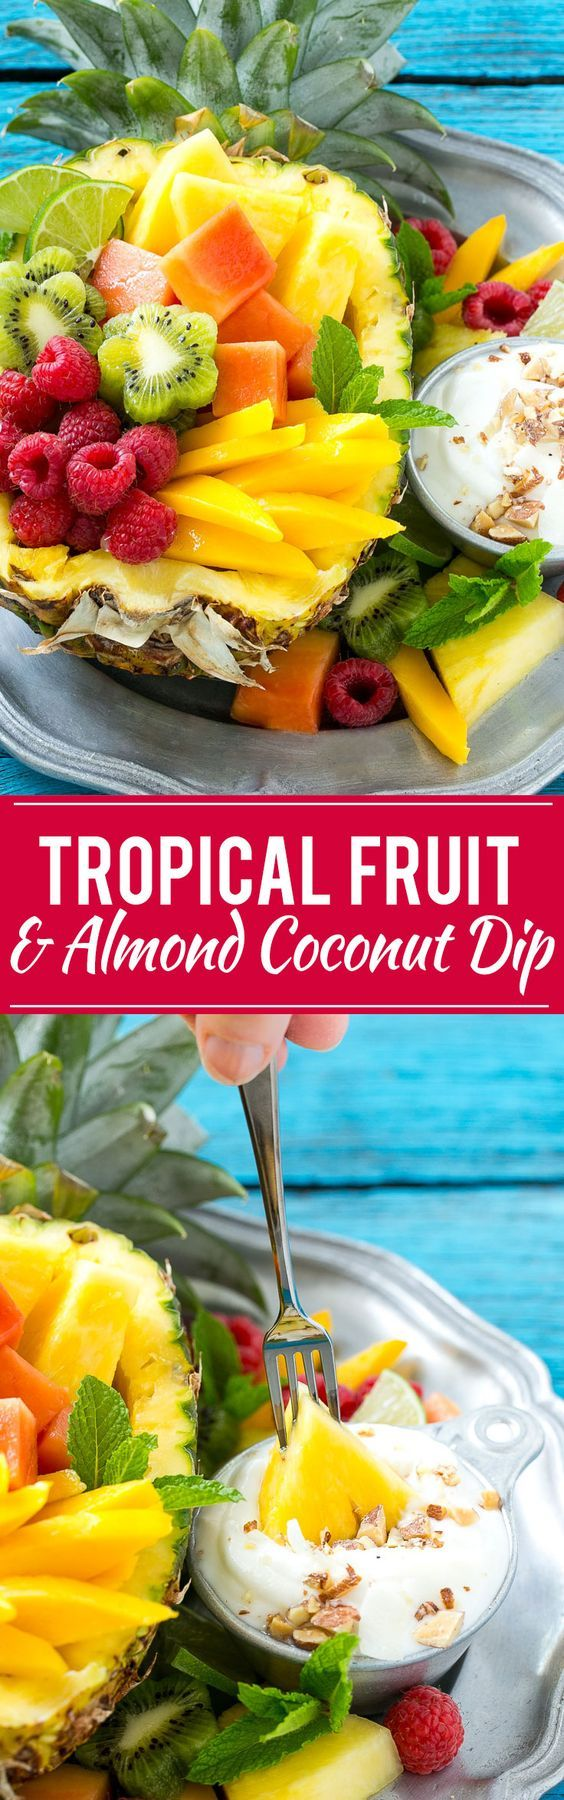 This recipe for tropical fruit salad is a colorful mixture of tropical fruit seasoned with lime juice and served with an ultra creamy coconut almond dip. Perfect for summer entertaining!